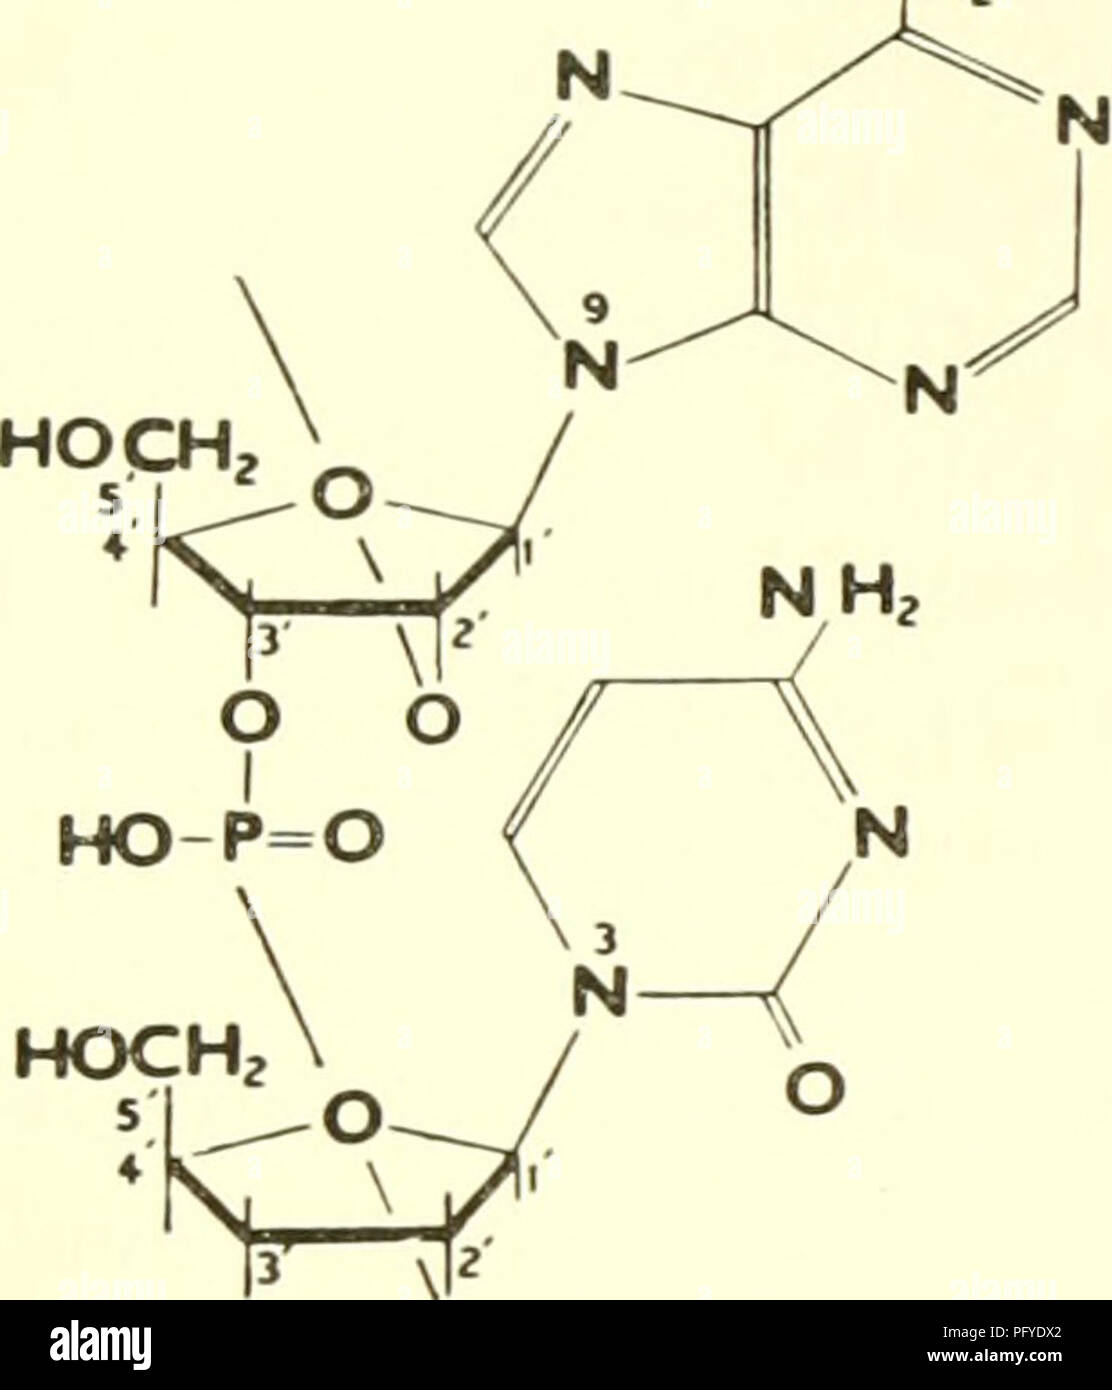 . Currents in biochemical research, 1956; twenty-seven essays charting the present course of biochemical research and considering the intimate relationship of biochemistry to medicine, physiology, and biology. Biochemistry -- Research. RIBONUCLEIC ACIDS carbon of one to the third carbon of the next (2',3' phospho- diester Hnk), could not accommodate the facts which were accumulating. Chief among these were the hydrolysis of RNA to nucleosides and inorganic phosphate by snake venoms (25-27) containing a phosphomonoesterase specific for 5' nucleotides, and the reduction of periodate by the mixtu - Stock Image